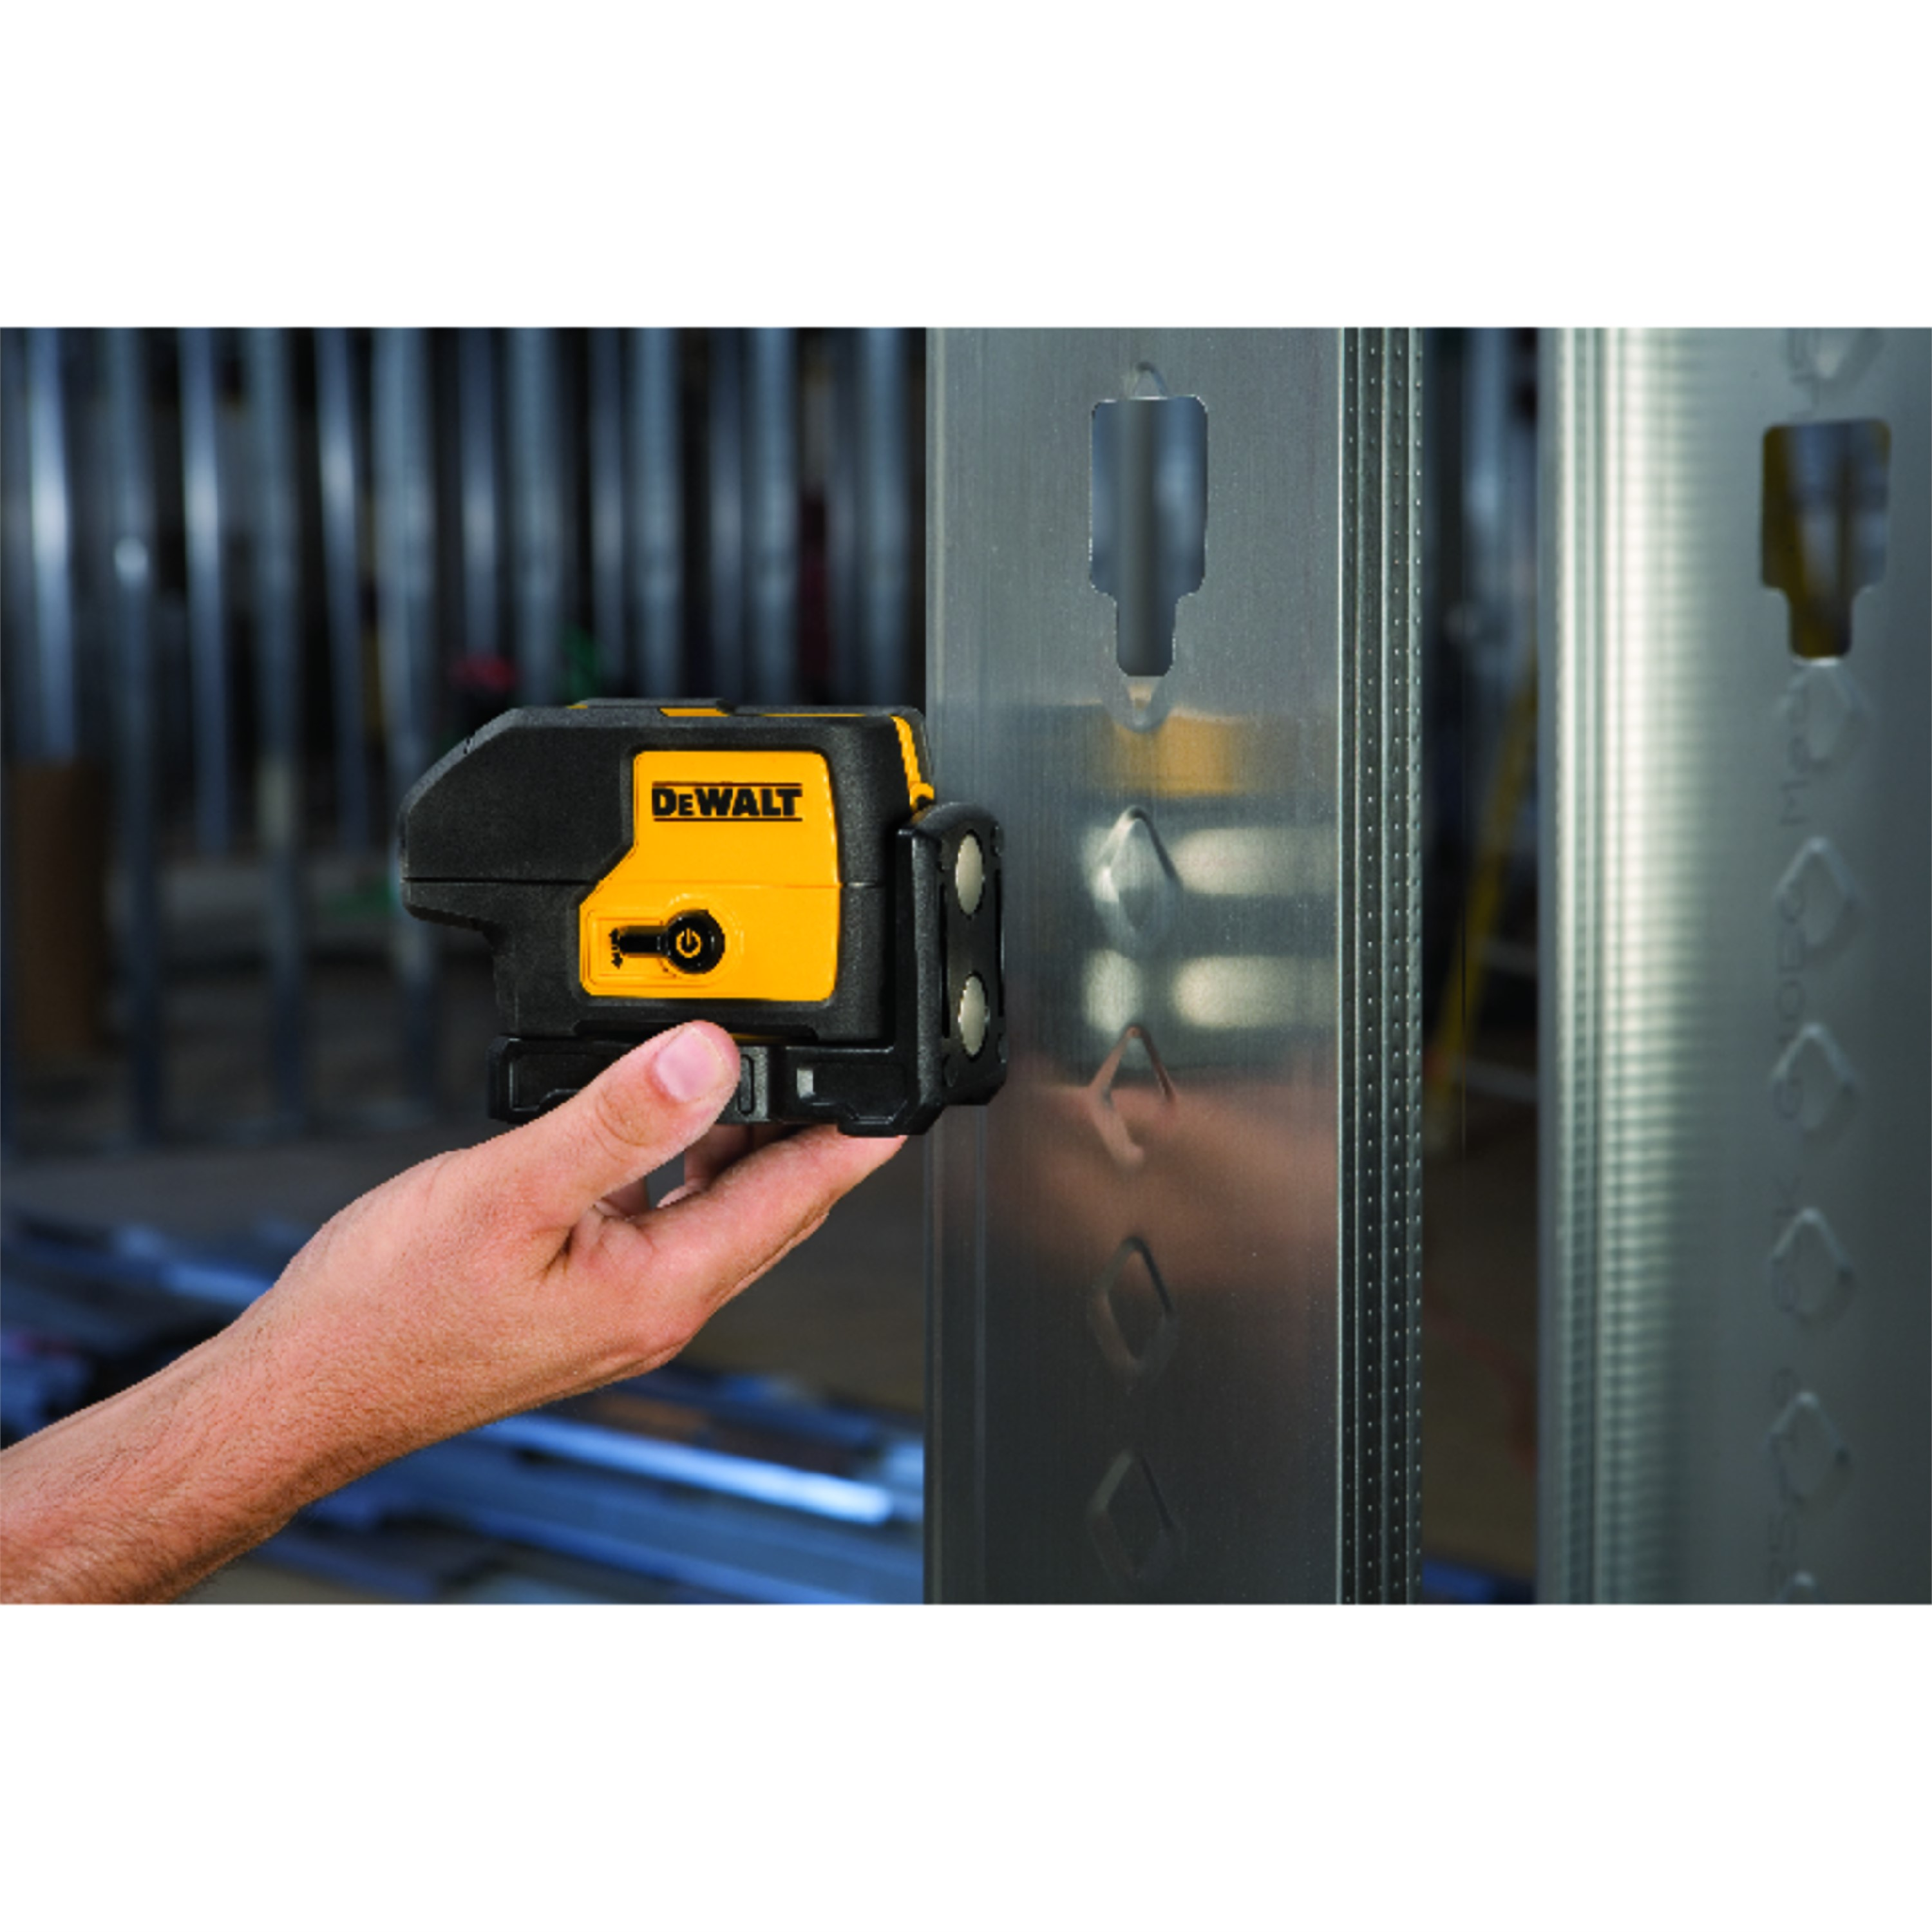 Testing Amp Measurement Construction Lasers Dewalt Laser